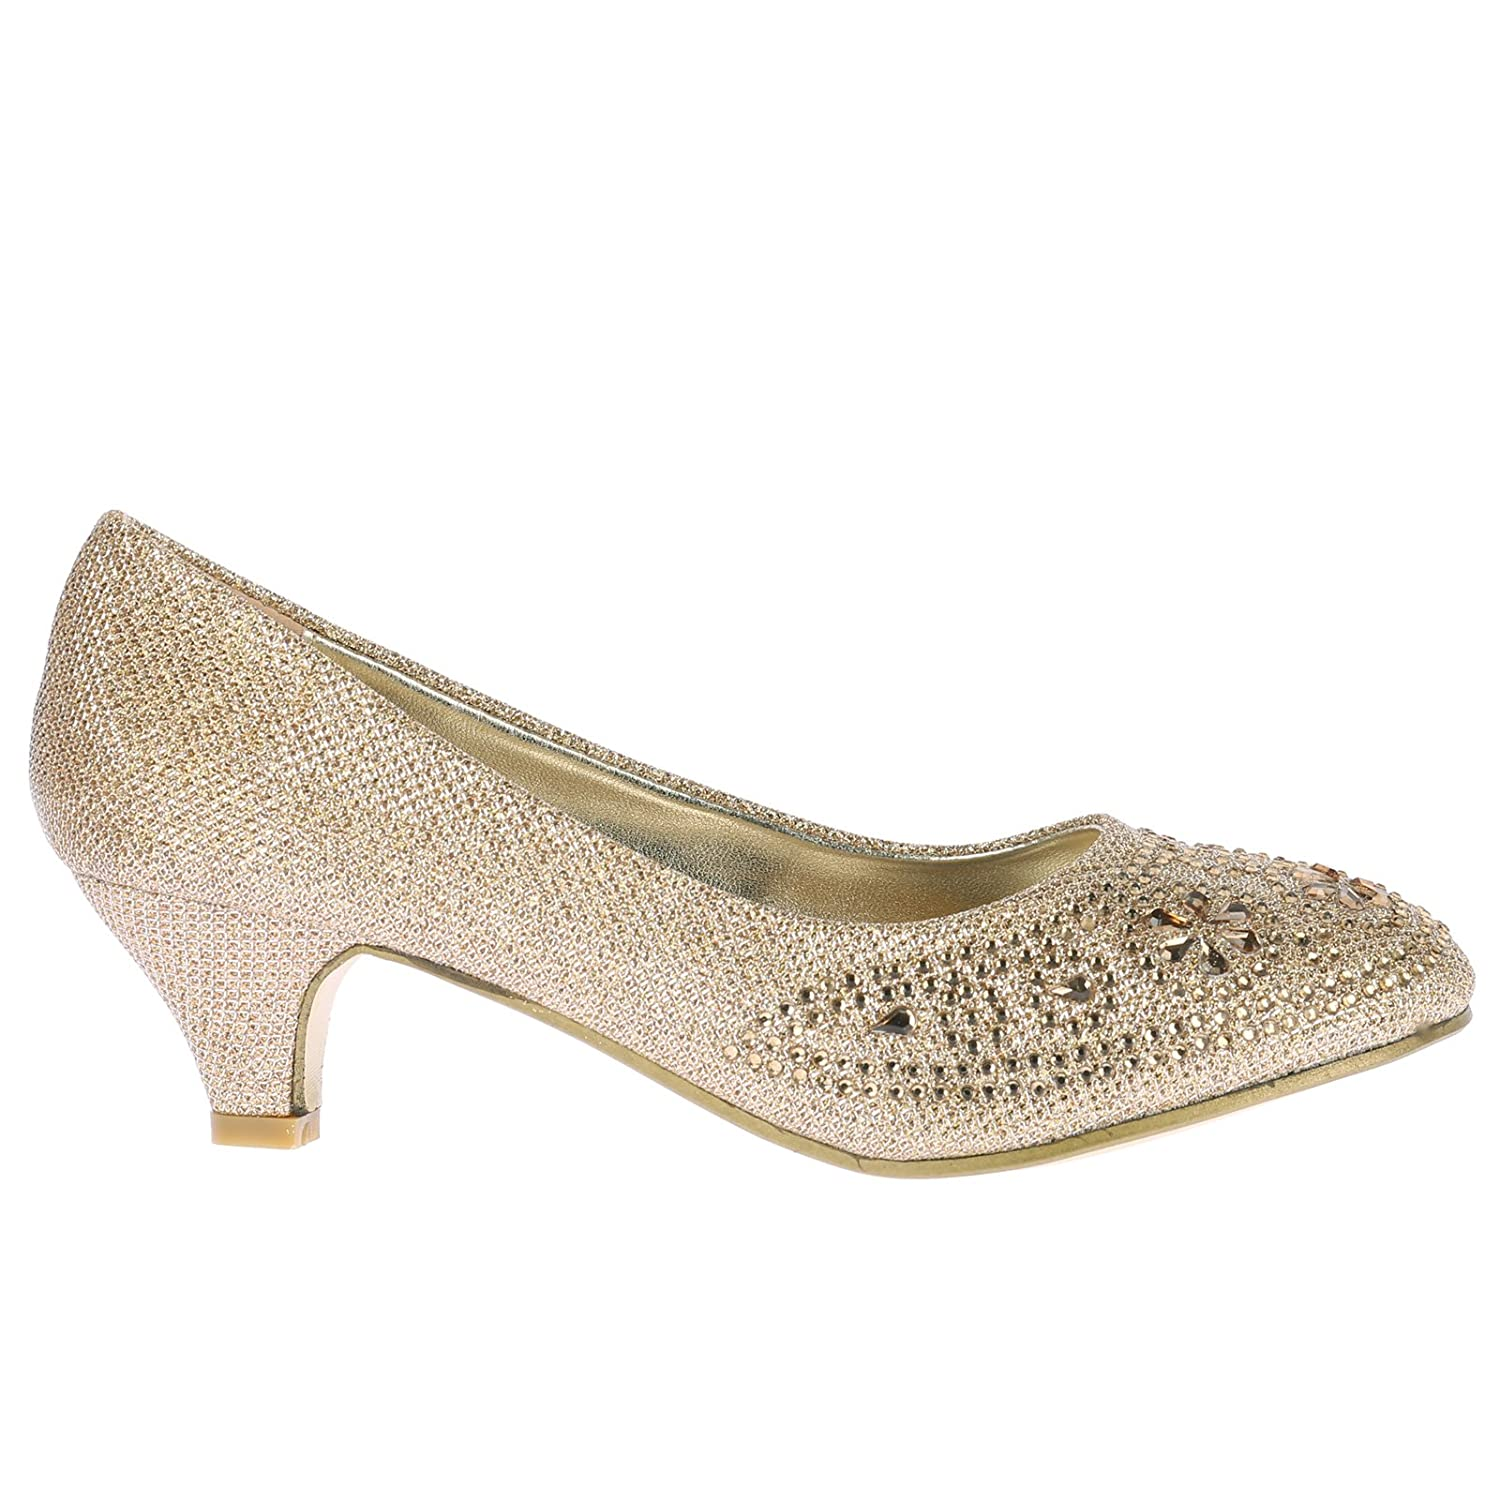 ByPublicDemand Sabrina Womens Mid Heel Diamante Party Court Shoes:  Amazon.co.uk: Shoes & Bags